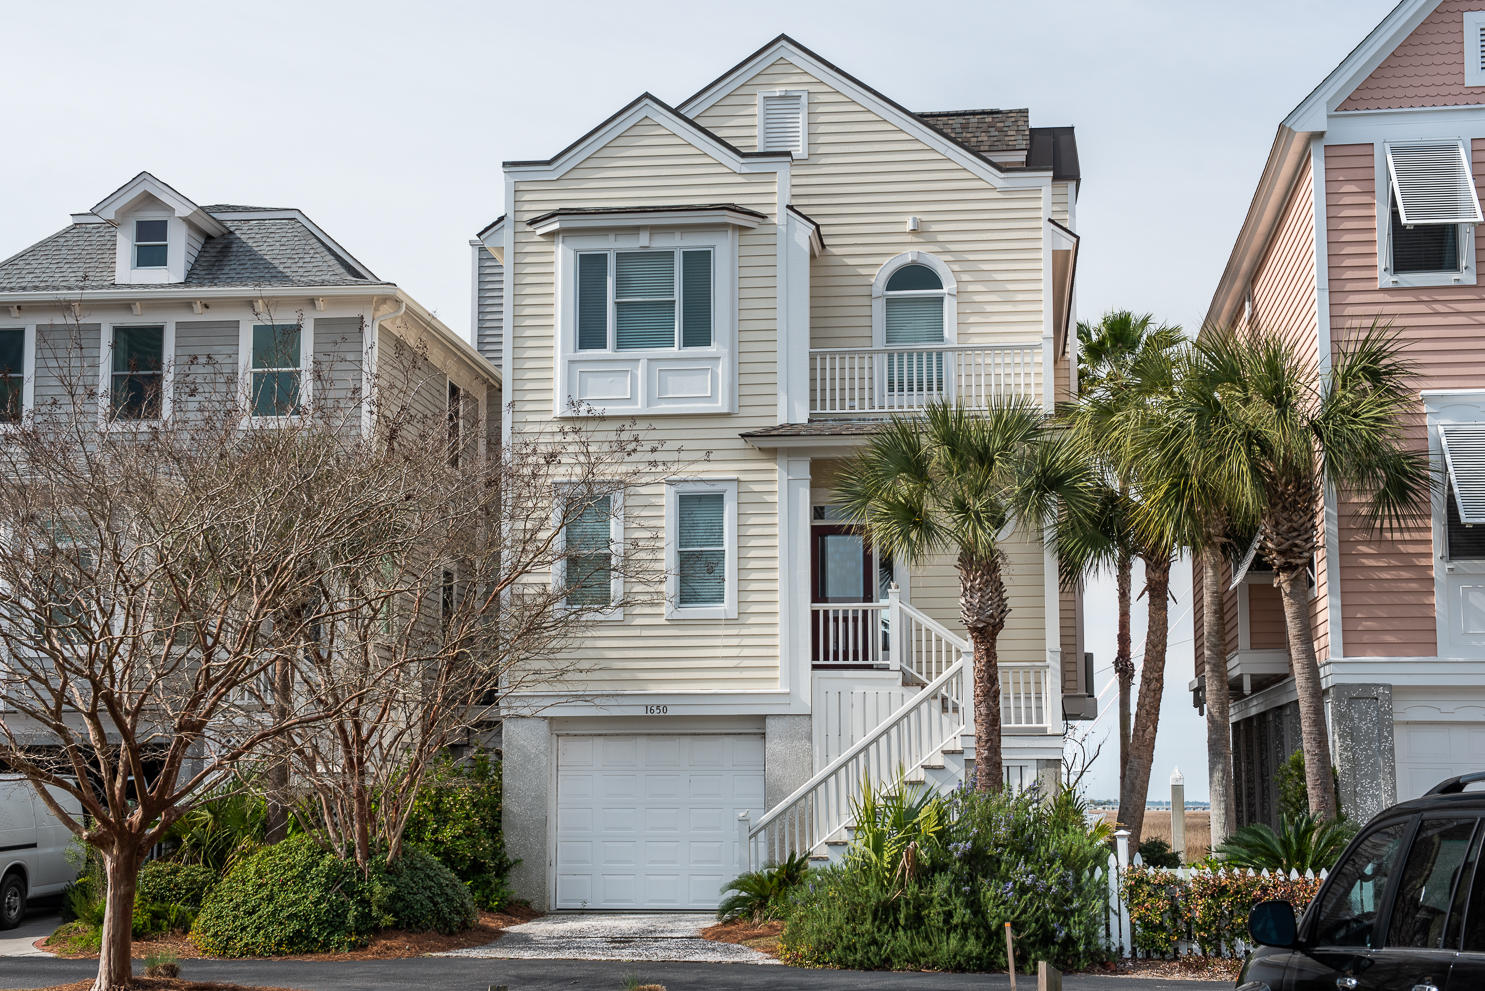 Tolers Cove Homes For Sale - B-4 & B-5 Tolers Cove Marina 70ft + Home, Mount Pleasant, SC - 46